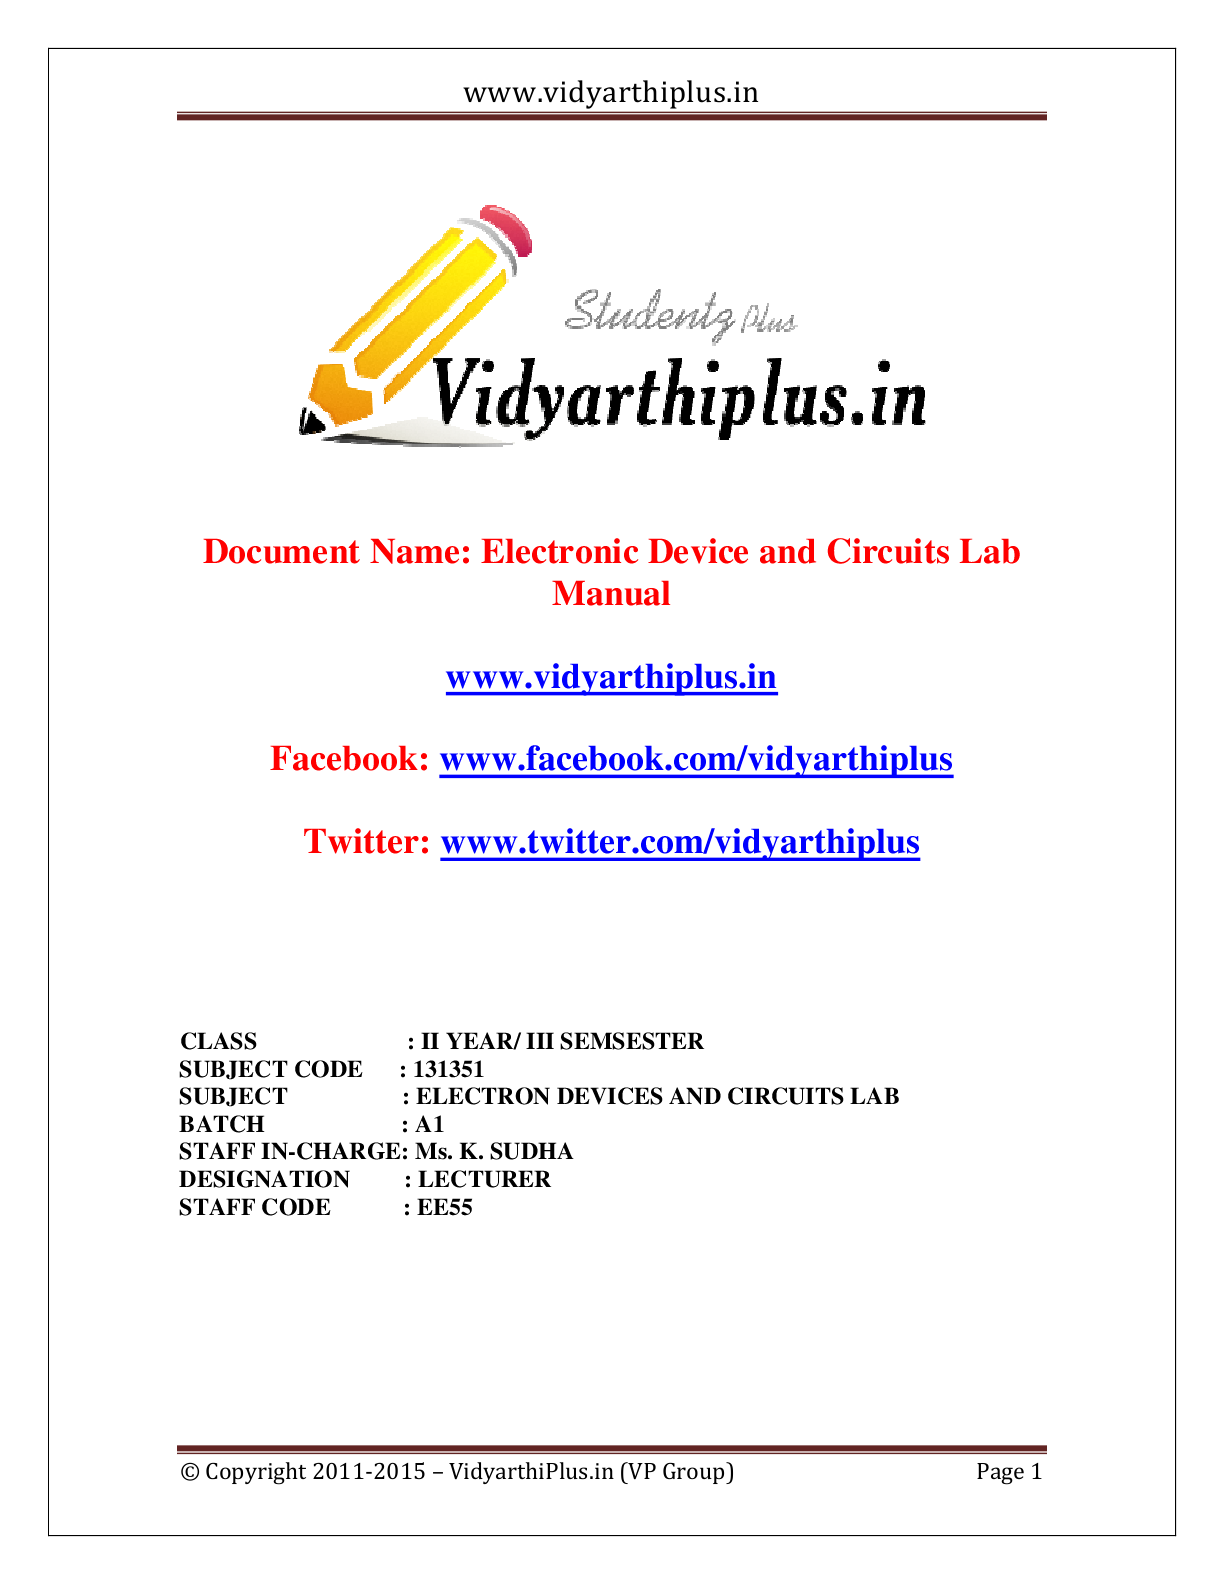 Electronic Device and Circuits (EDC) - Lab Manual